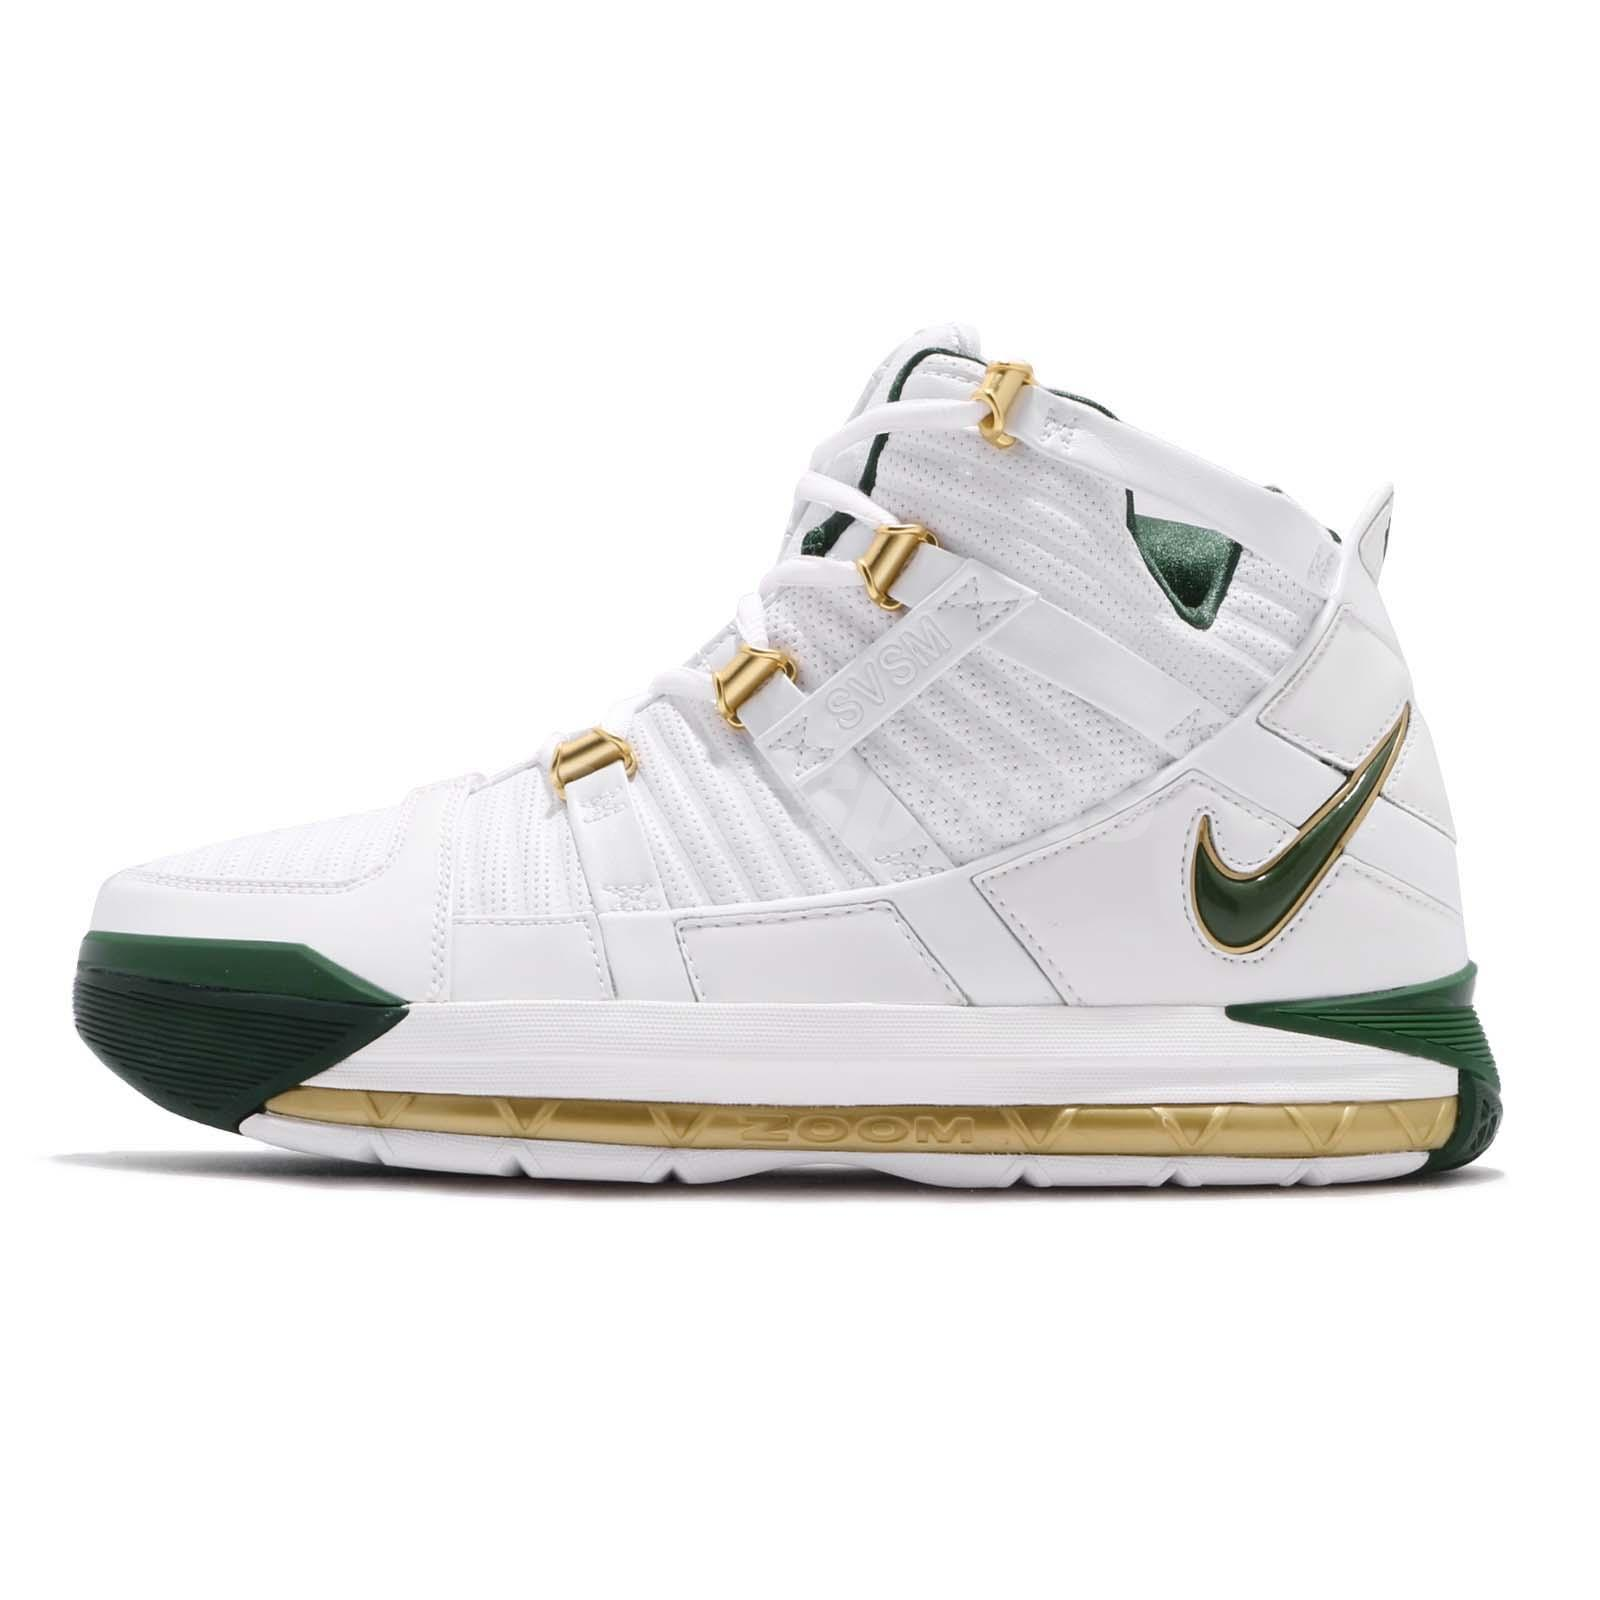 detailed pictures acdf3 7ce4b Nike Zoom Lebron III QS SVSM Home White Green Men Basketball Shoes  AO2434-102